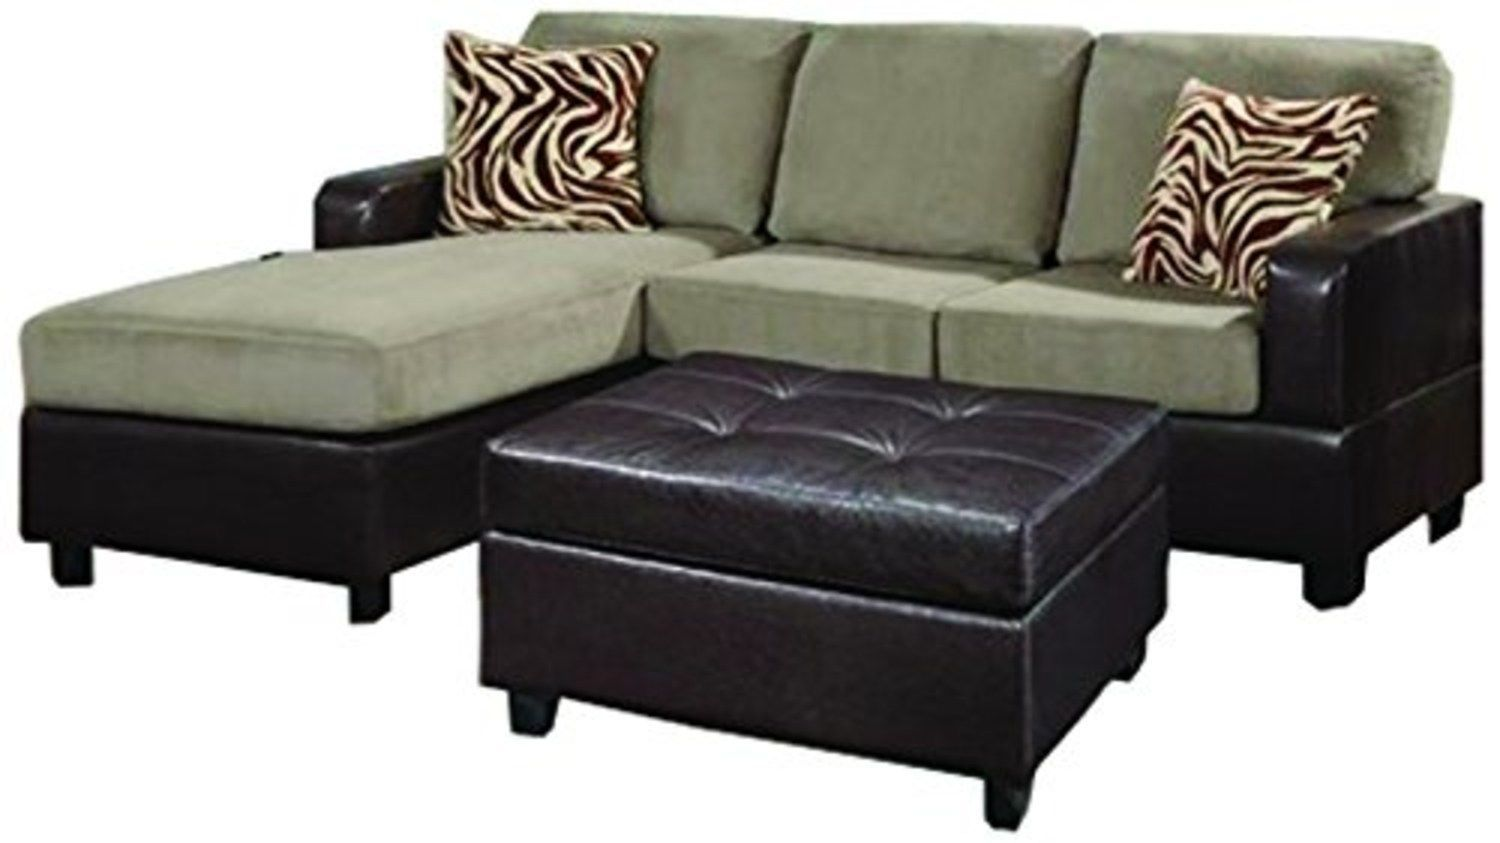 Bobkona manhanttan reversible microfiber 3 piece sectional for 3 piece sectional sofa for sale